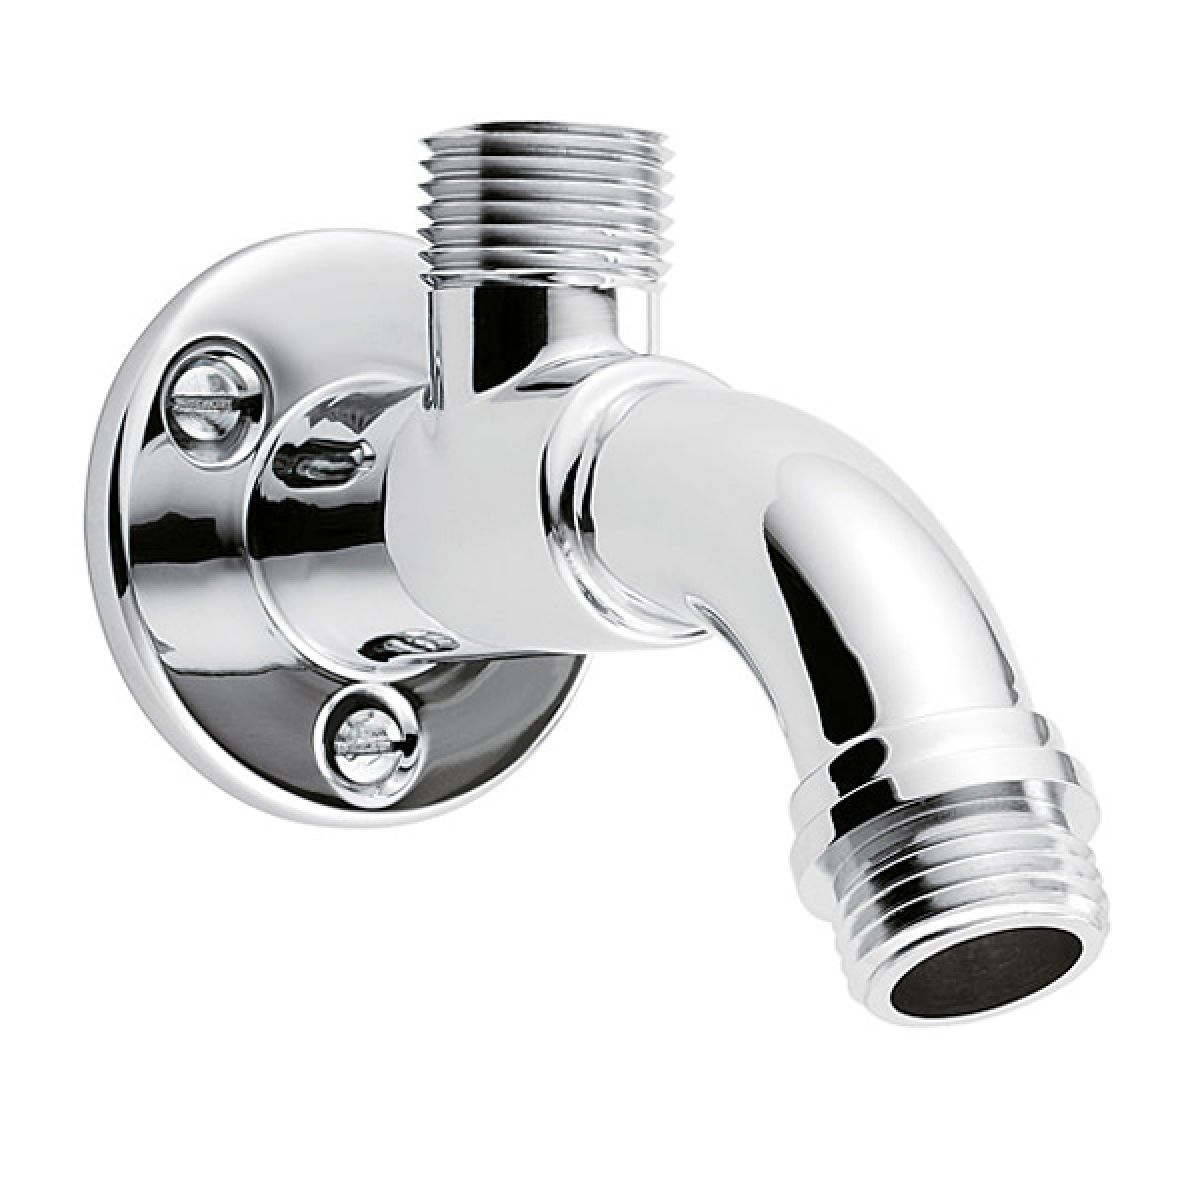 Triton Chrome Top Entry Shower Arm 90mm